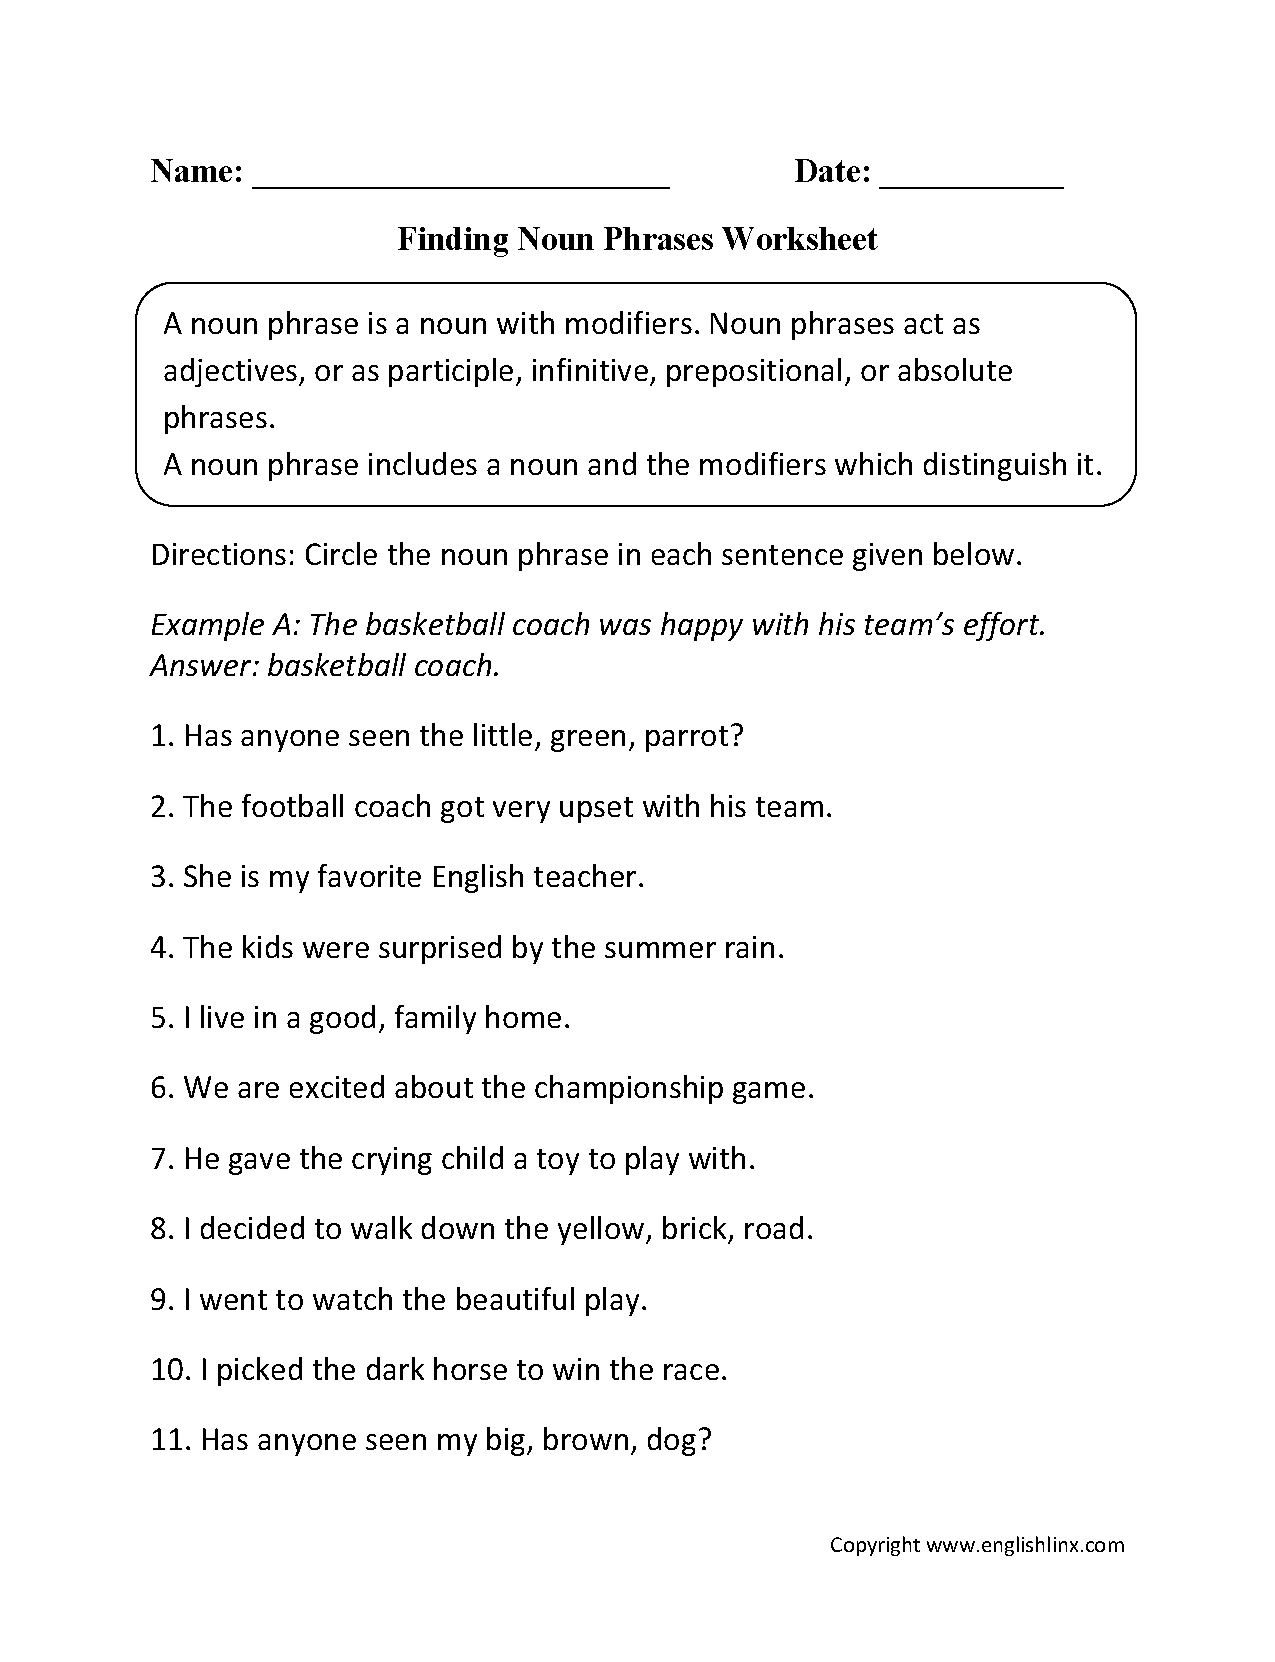 Nouns Worksheets – Nouns Verbs and Adjectives Worksheets